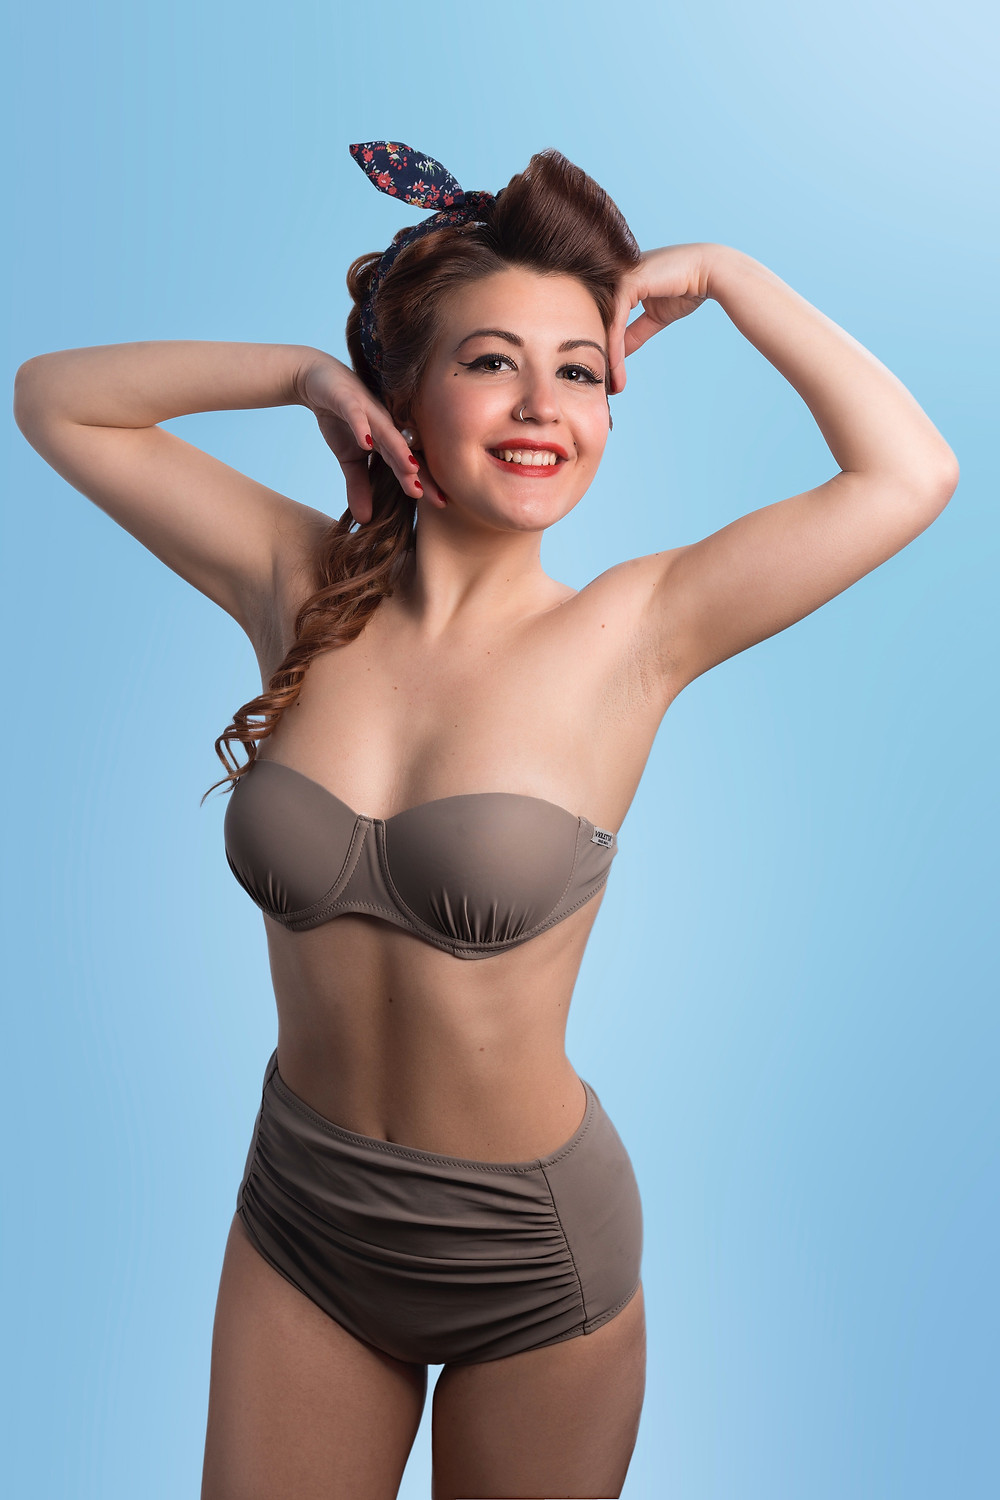 cute pin up girl wearing matching vintage lingerie